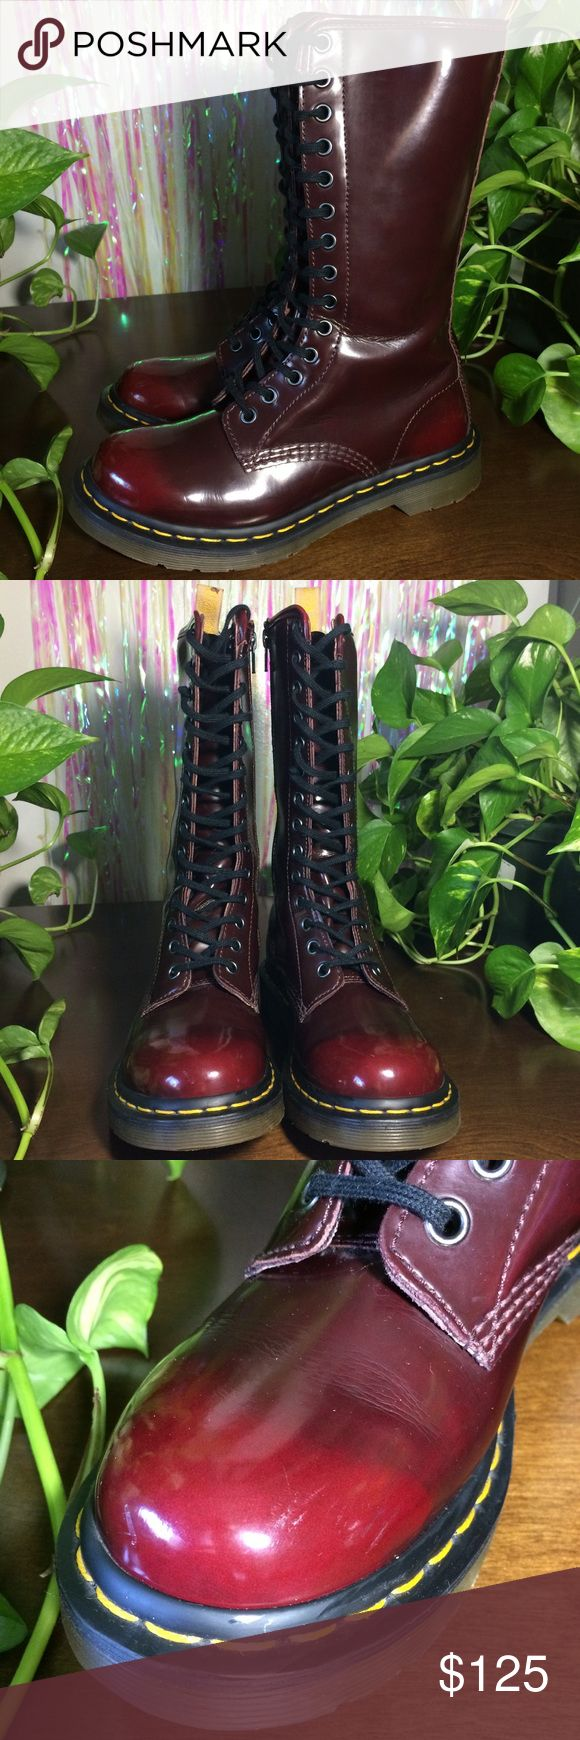 """Vegan Dr. Martens Cherry 🍒 Red Tall Boots 14 Eye. UK 4. US Women's 6. Side zipper entry. Normal creasing. Minor scuffing on toes & sides.   Insole - 9.25""""  *I'm not responsible for the fit of an item*  🚫 I don't discuss prices through comments, please use the offer button!  ⚡️ Same-day or next-day shipping 📬 All packages handled with care 📦 Bundle 2+ items for a discount 👽 Follow for new items & sale updates 🏡 Pet-free & smoke-free home 💖 Please, read shop policies! :) Dr. Martens…"""